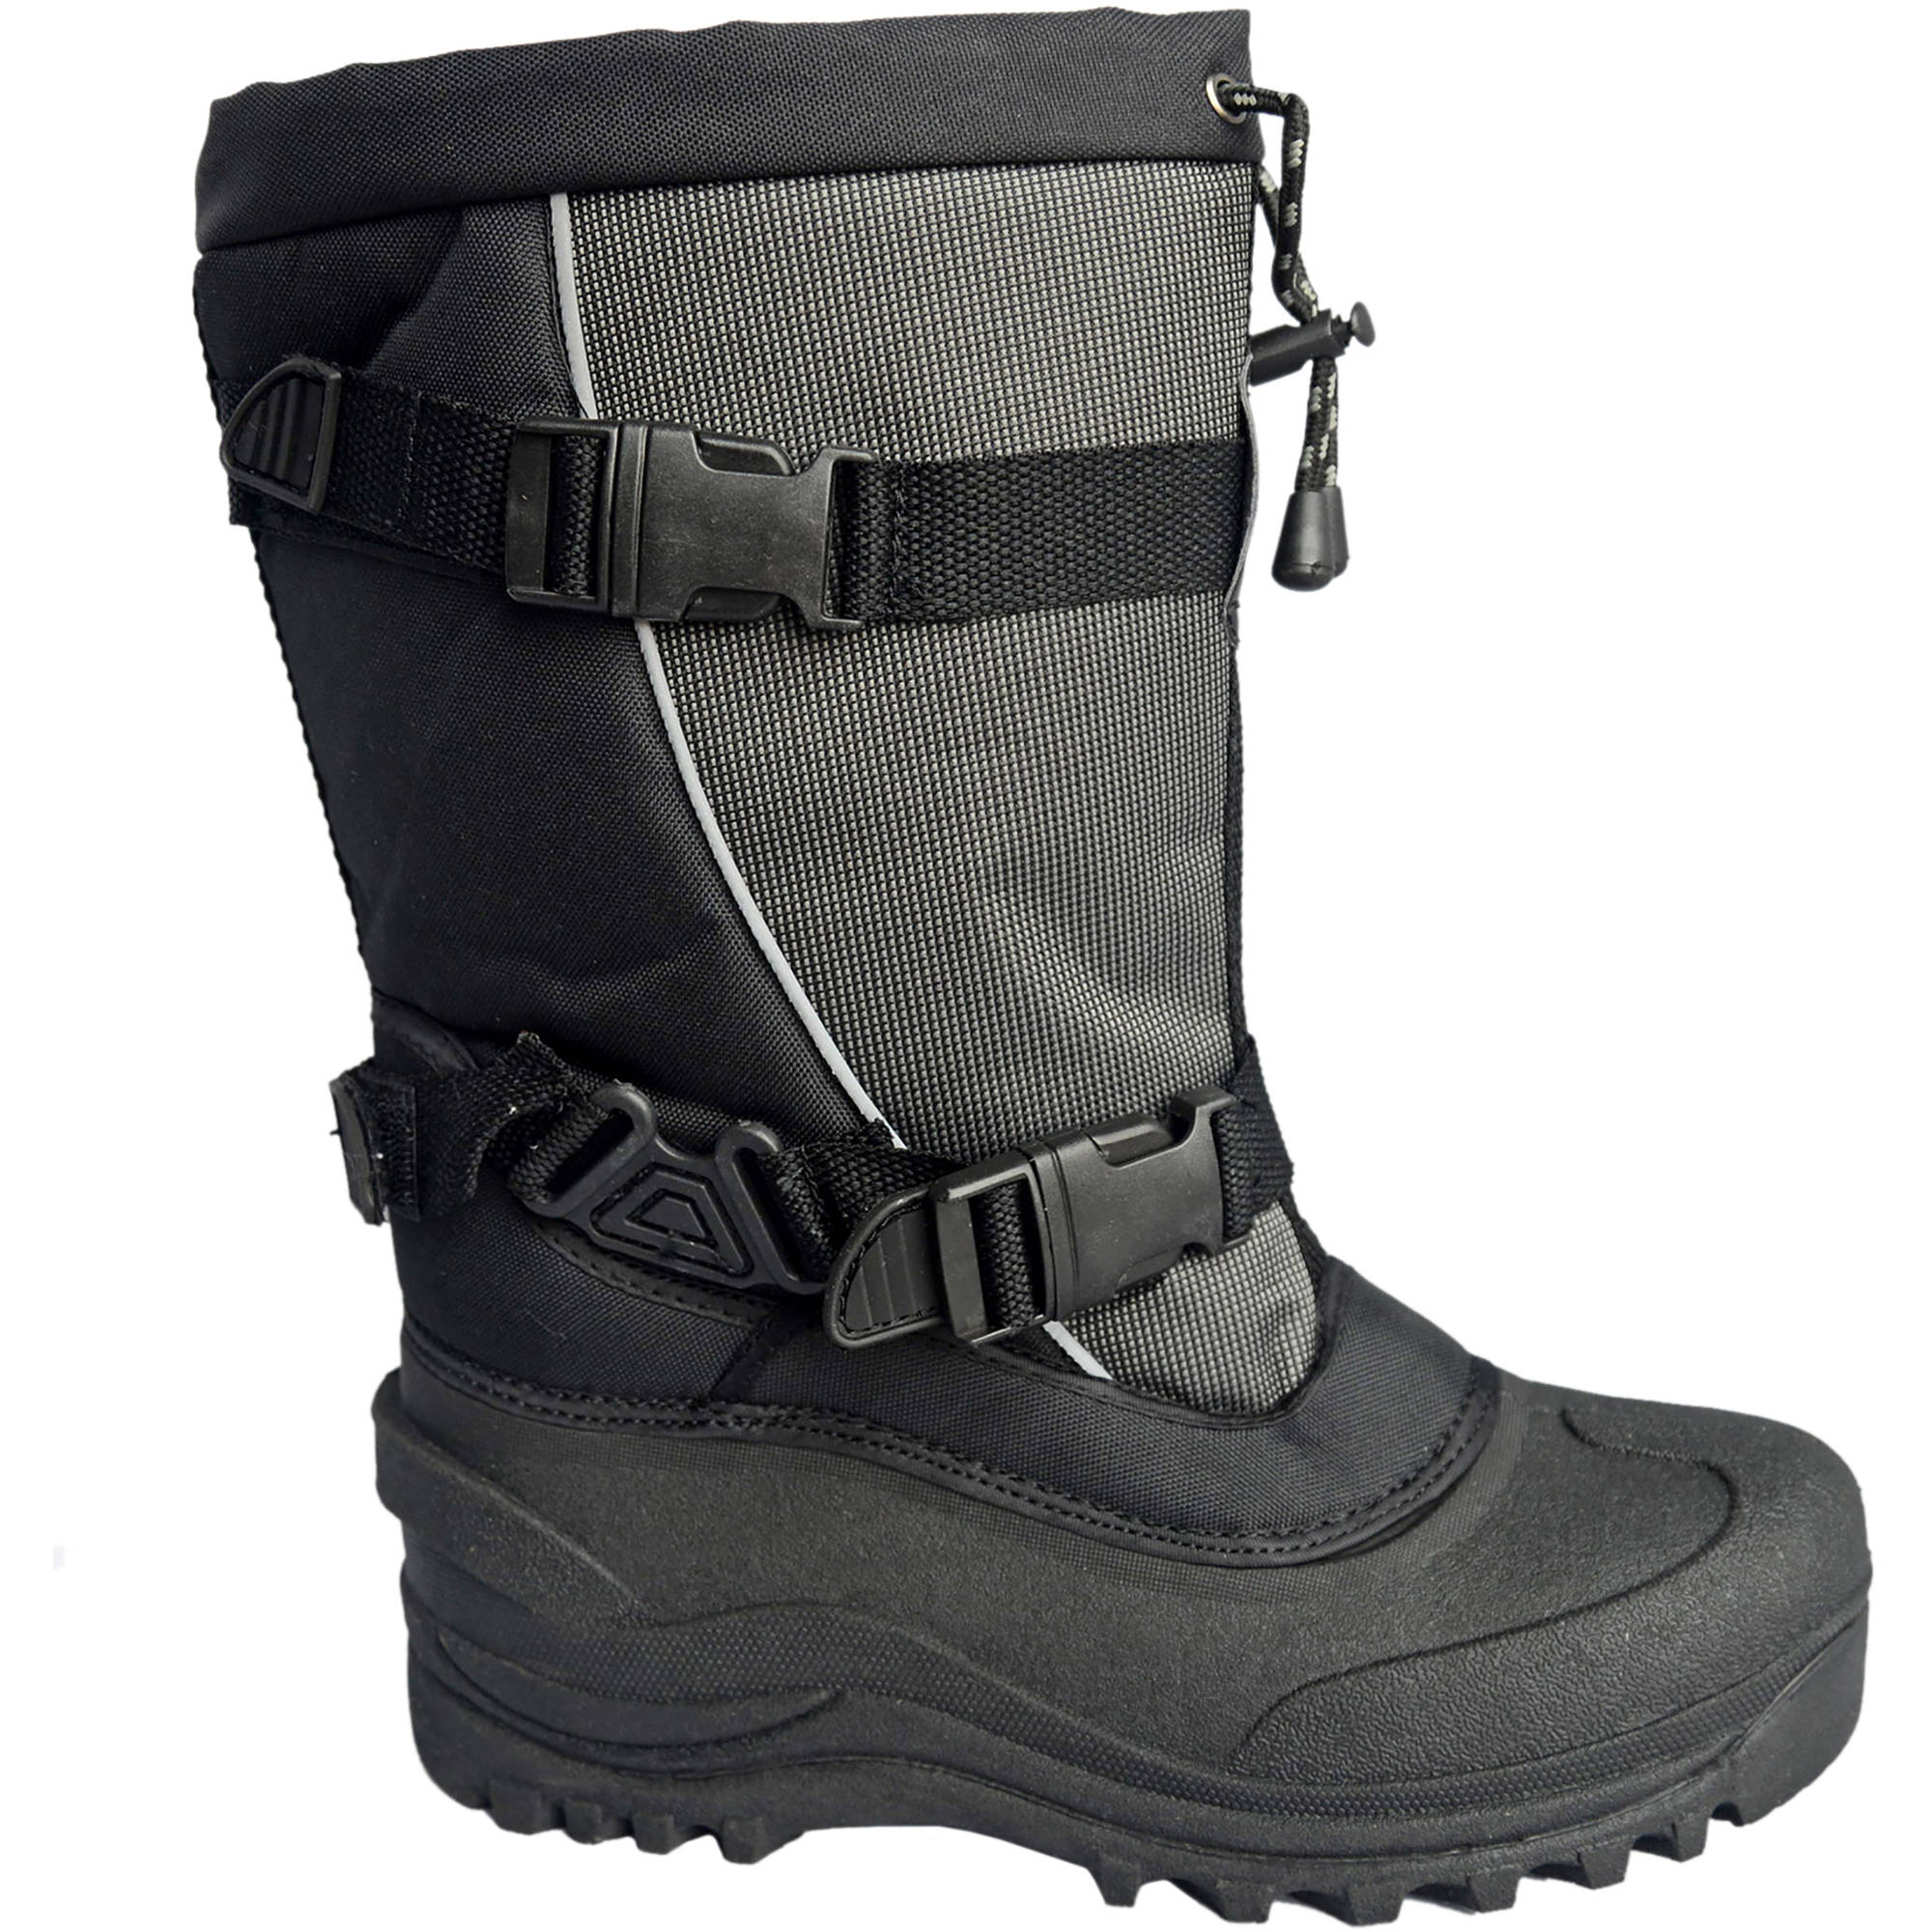 Cold Front Women's Sled Cat Buckle Winter Boot